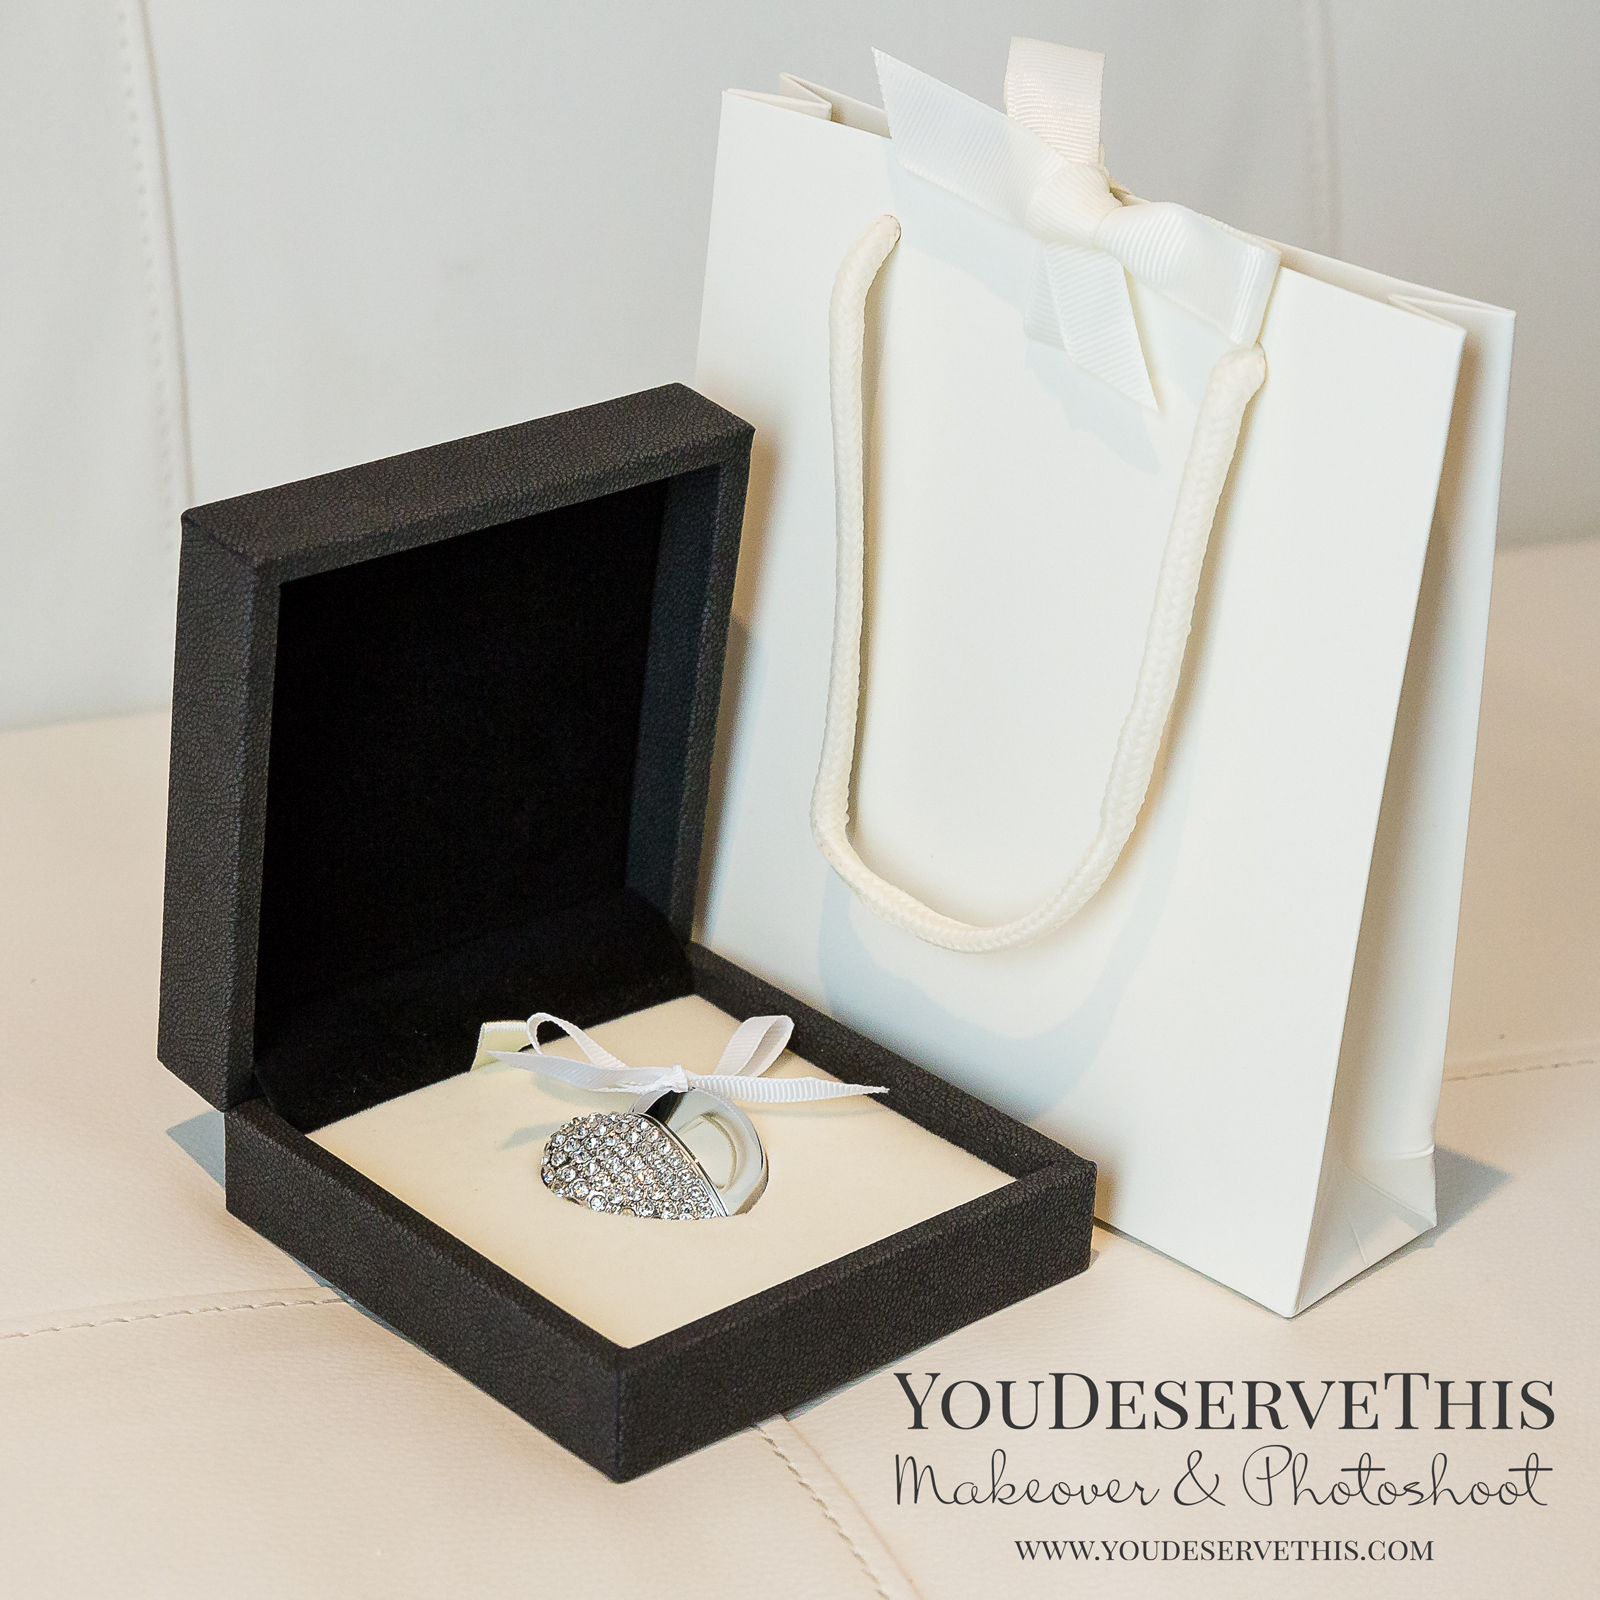 'Purely Digital' our most popular package - Includes our Crystal Heart USB - pictured left